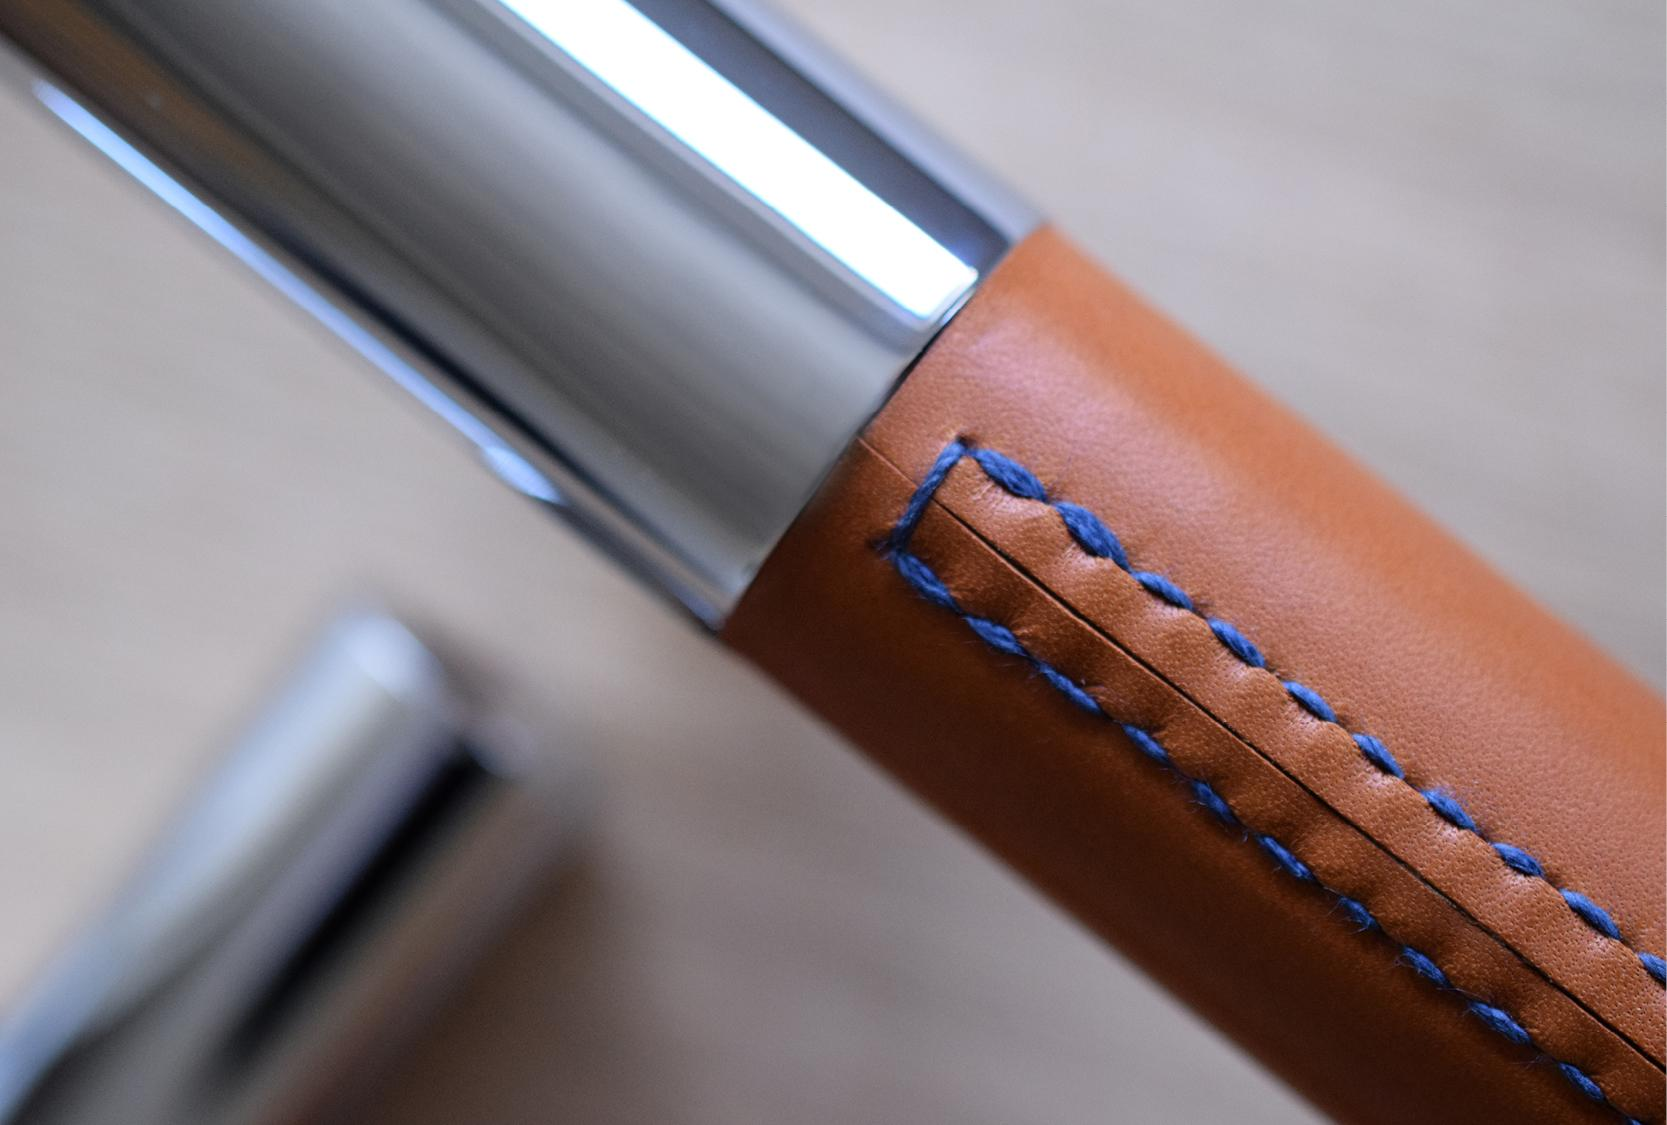 LARGE BARREL MULTI GRIP WITH BLUE STITCHING